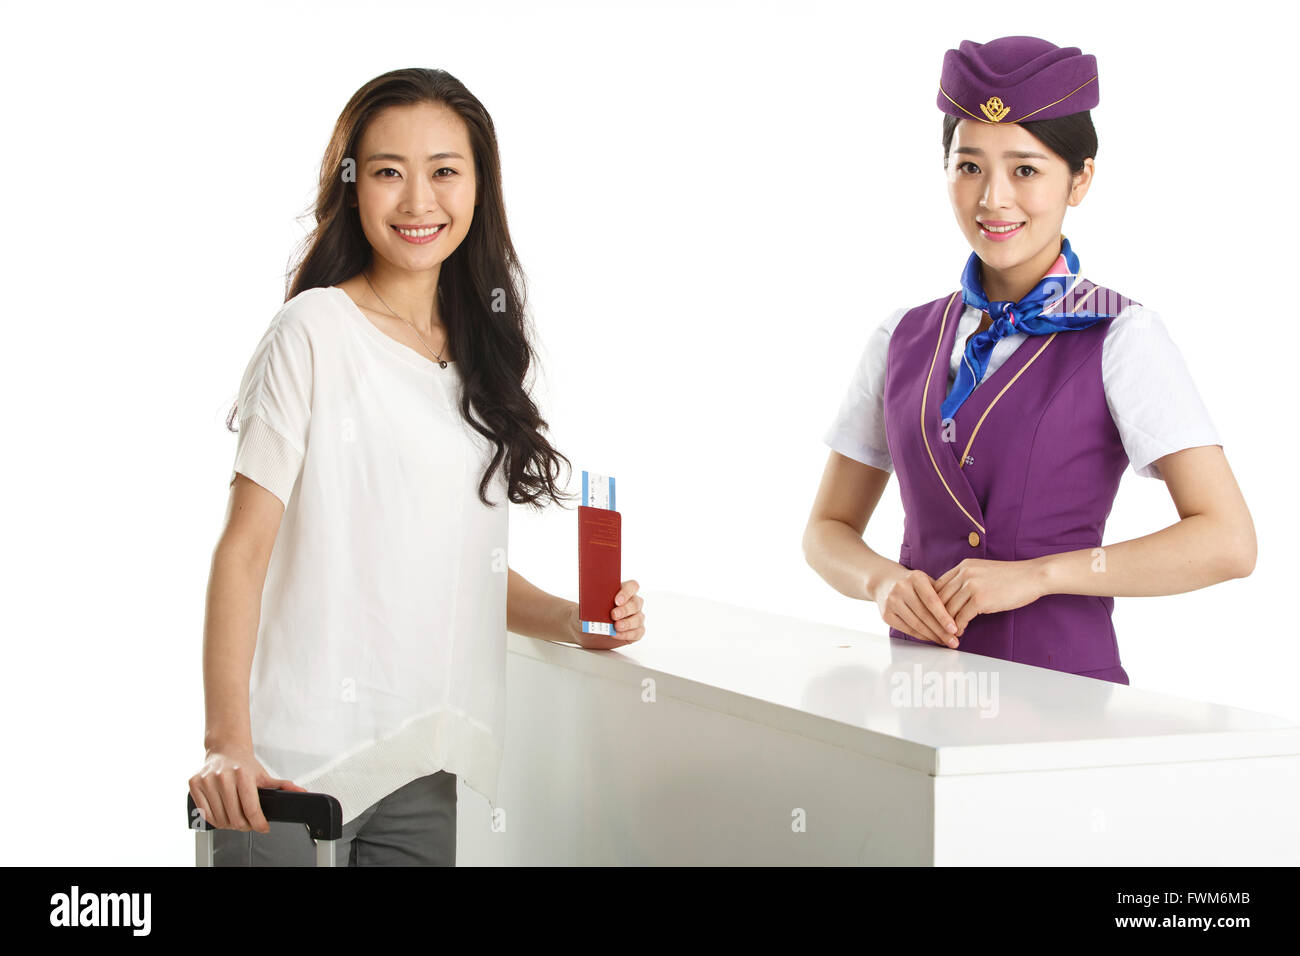 Young female flight attendants and passengers - Stock Image